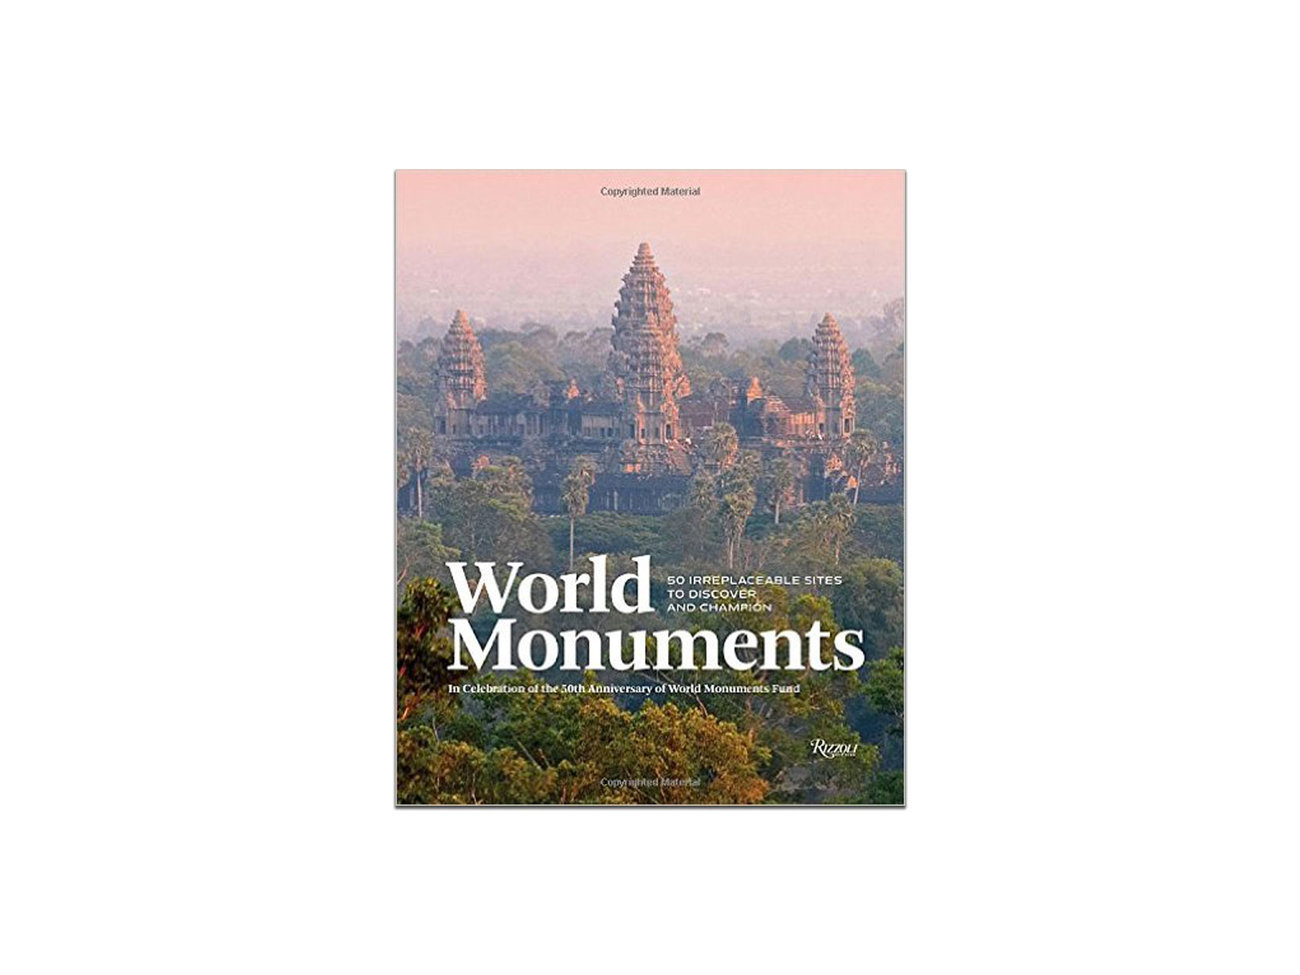 Home-world-monuments-book-GG1115.jpg